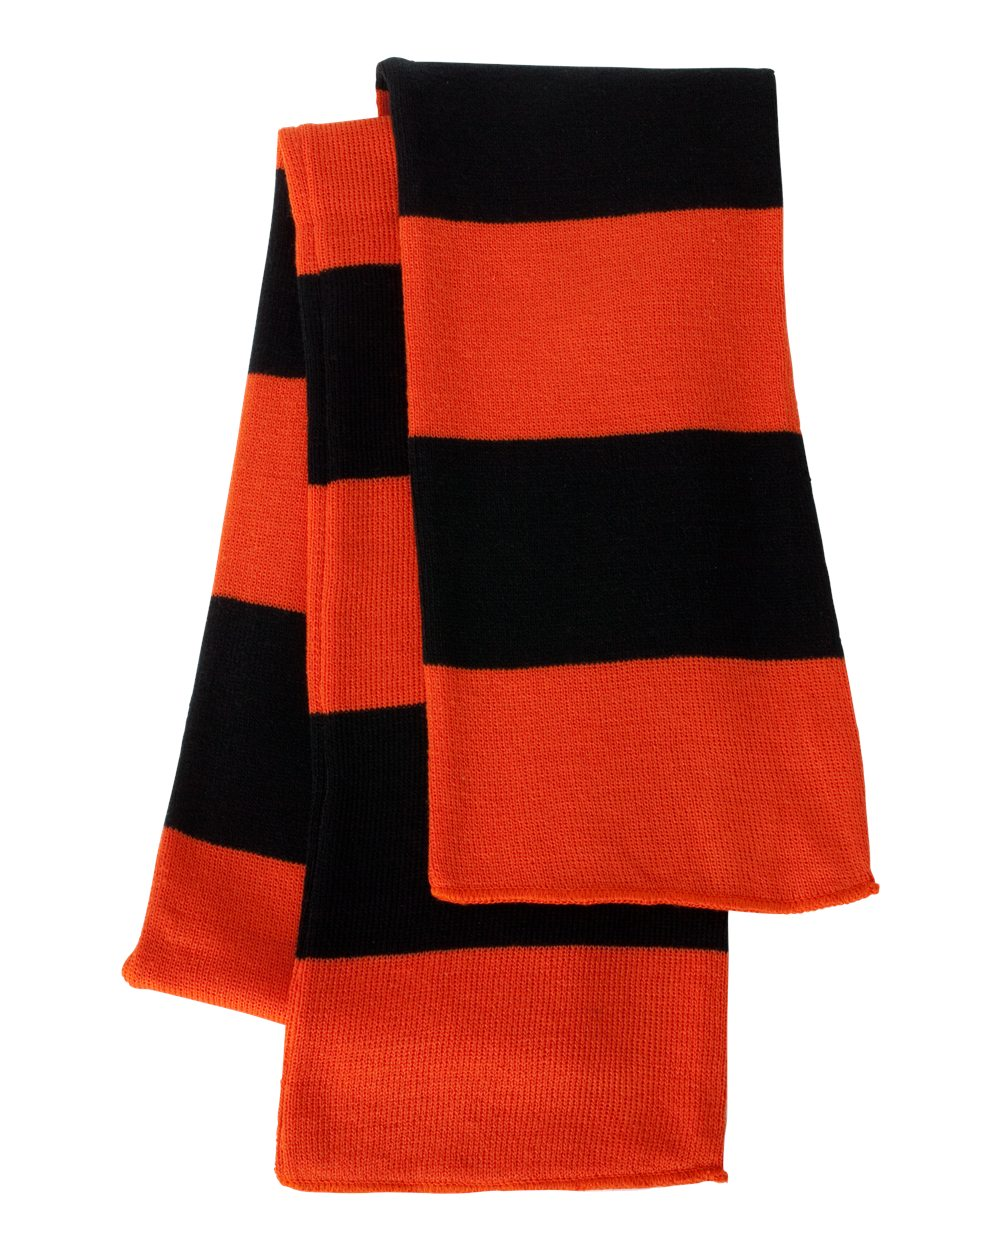 click to view Orange/Black